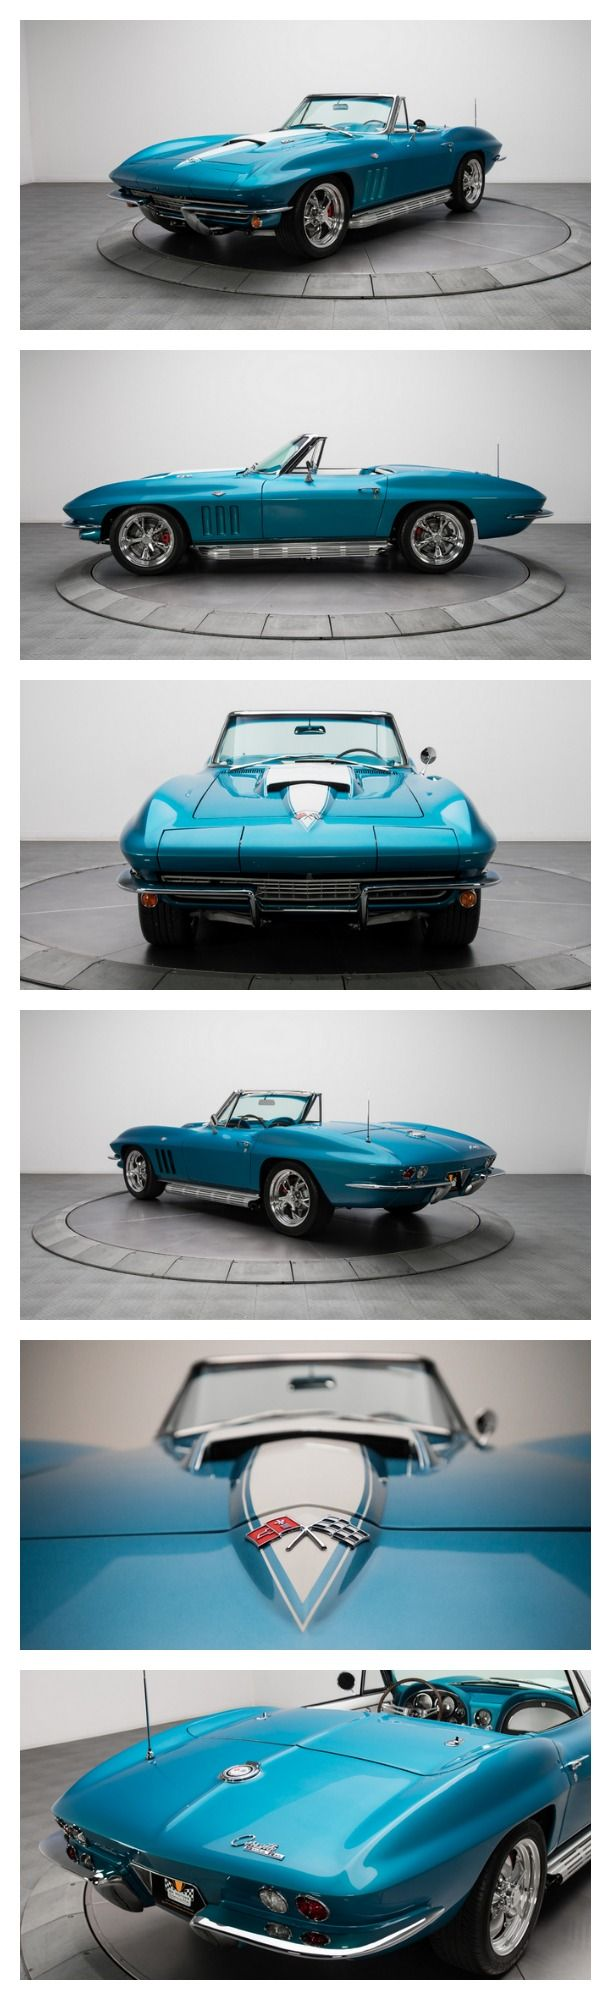 This world class Chevy Stingray is the car of your dreams! #ThrowbackThursday - LGMSports.com